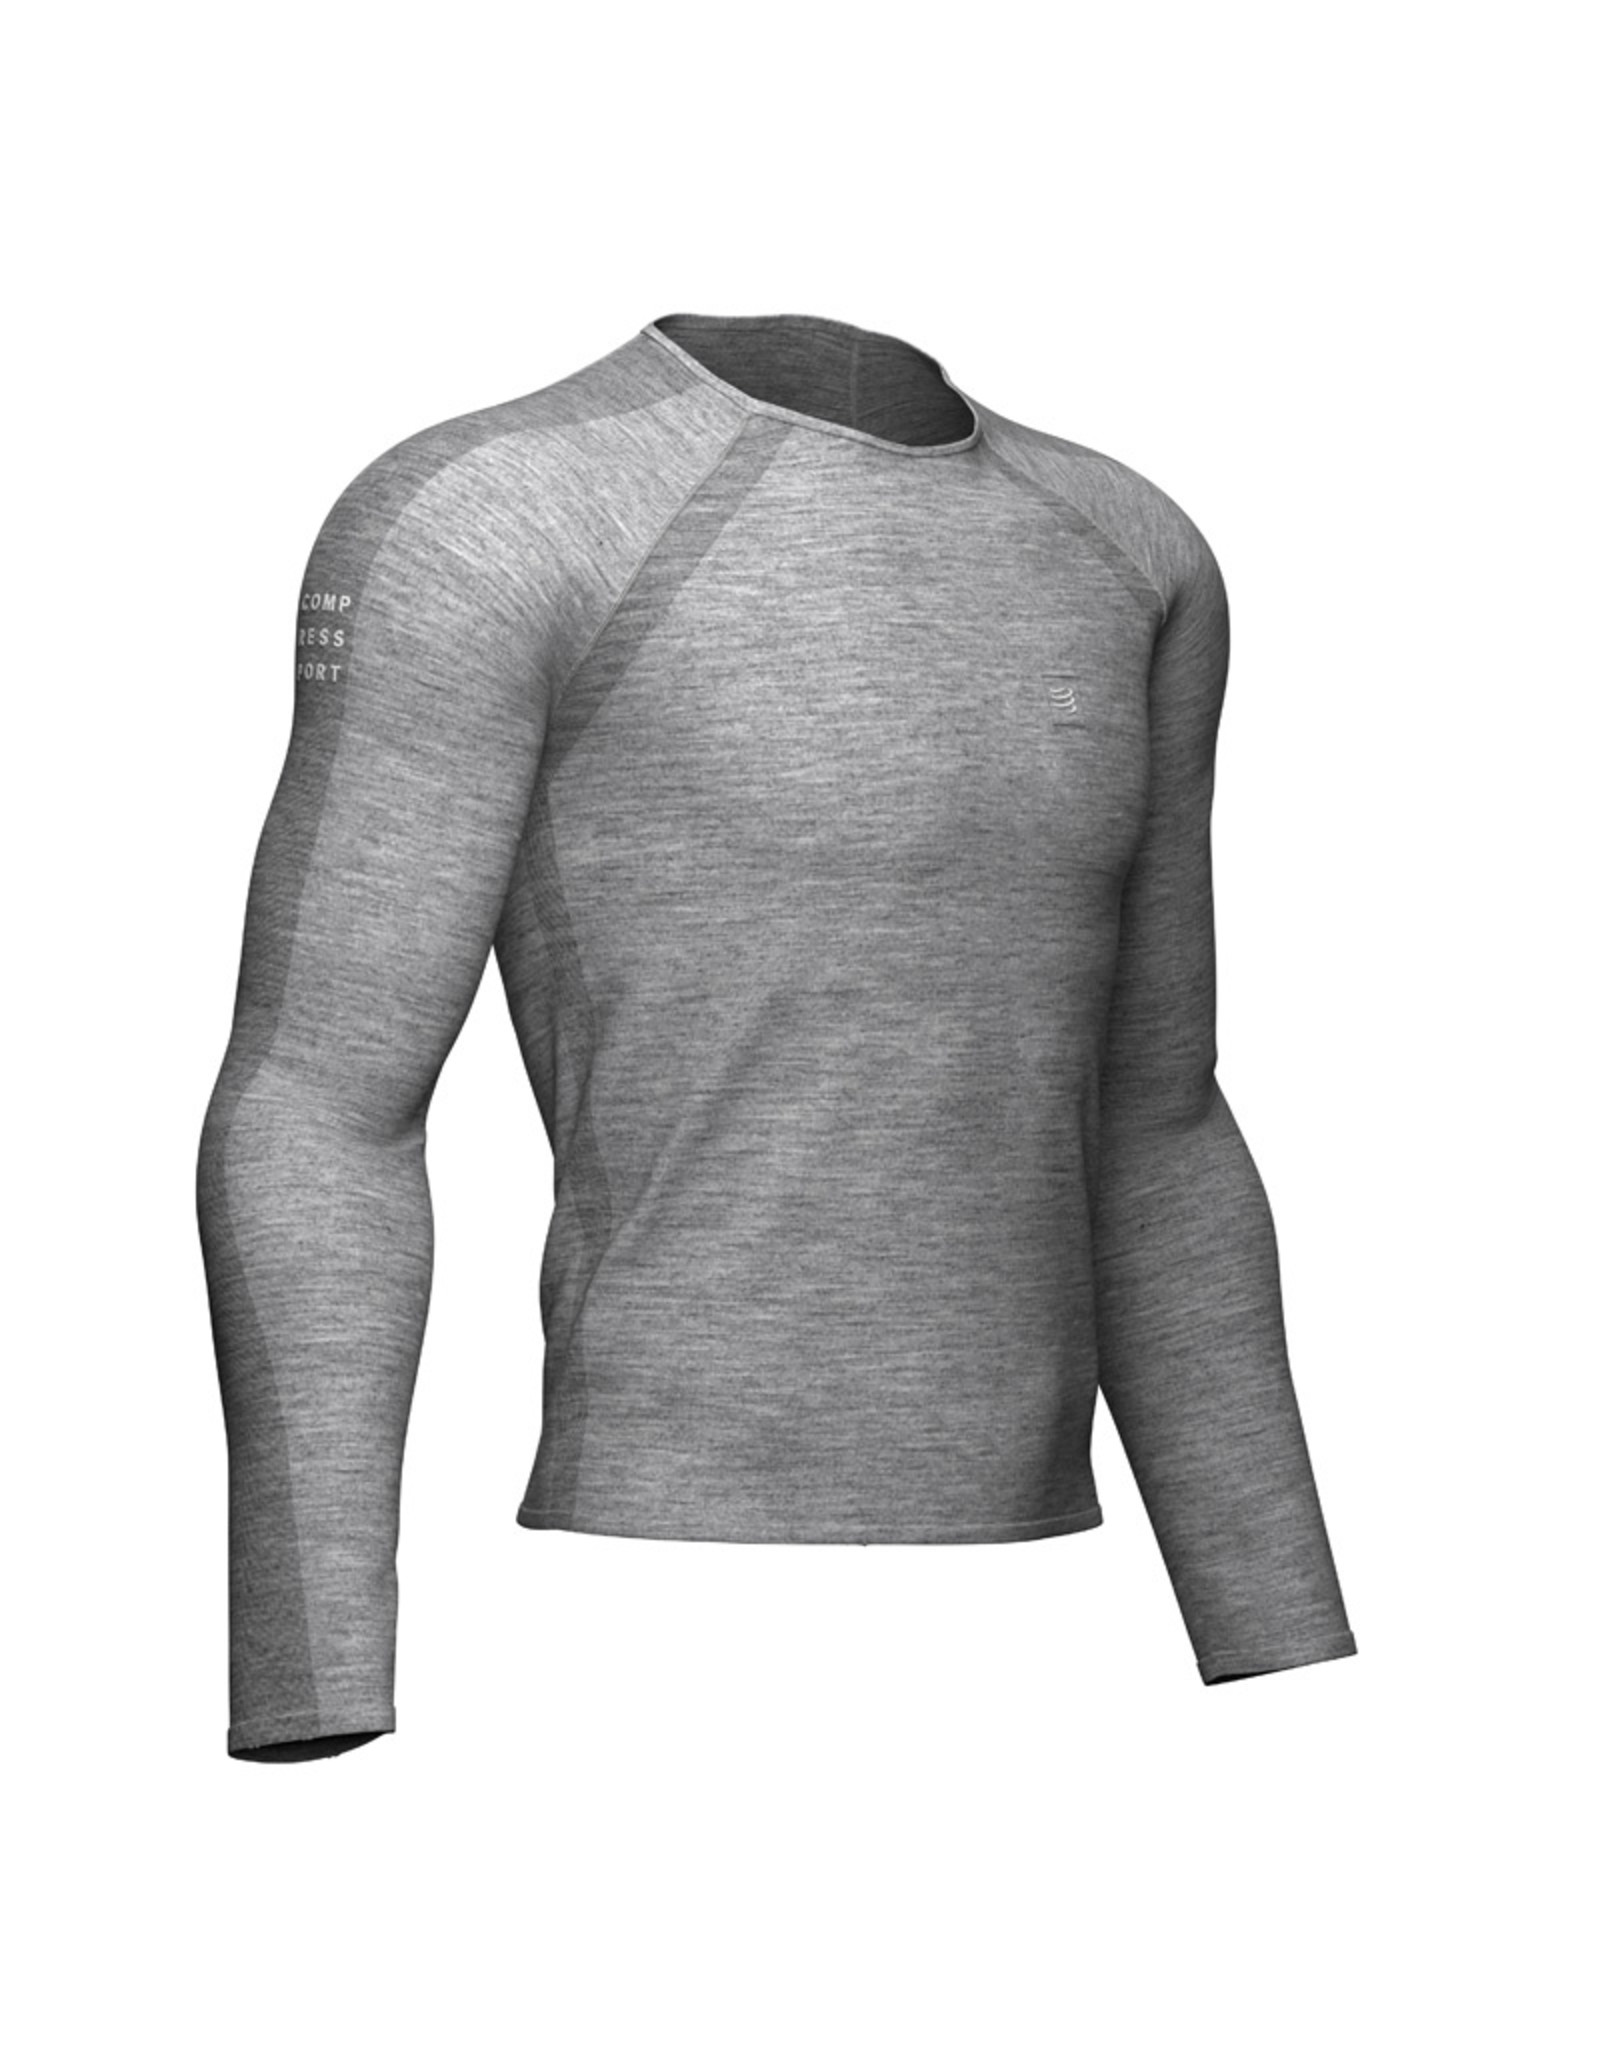 Compressport Training Shirt Manche Longue - Gris